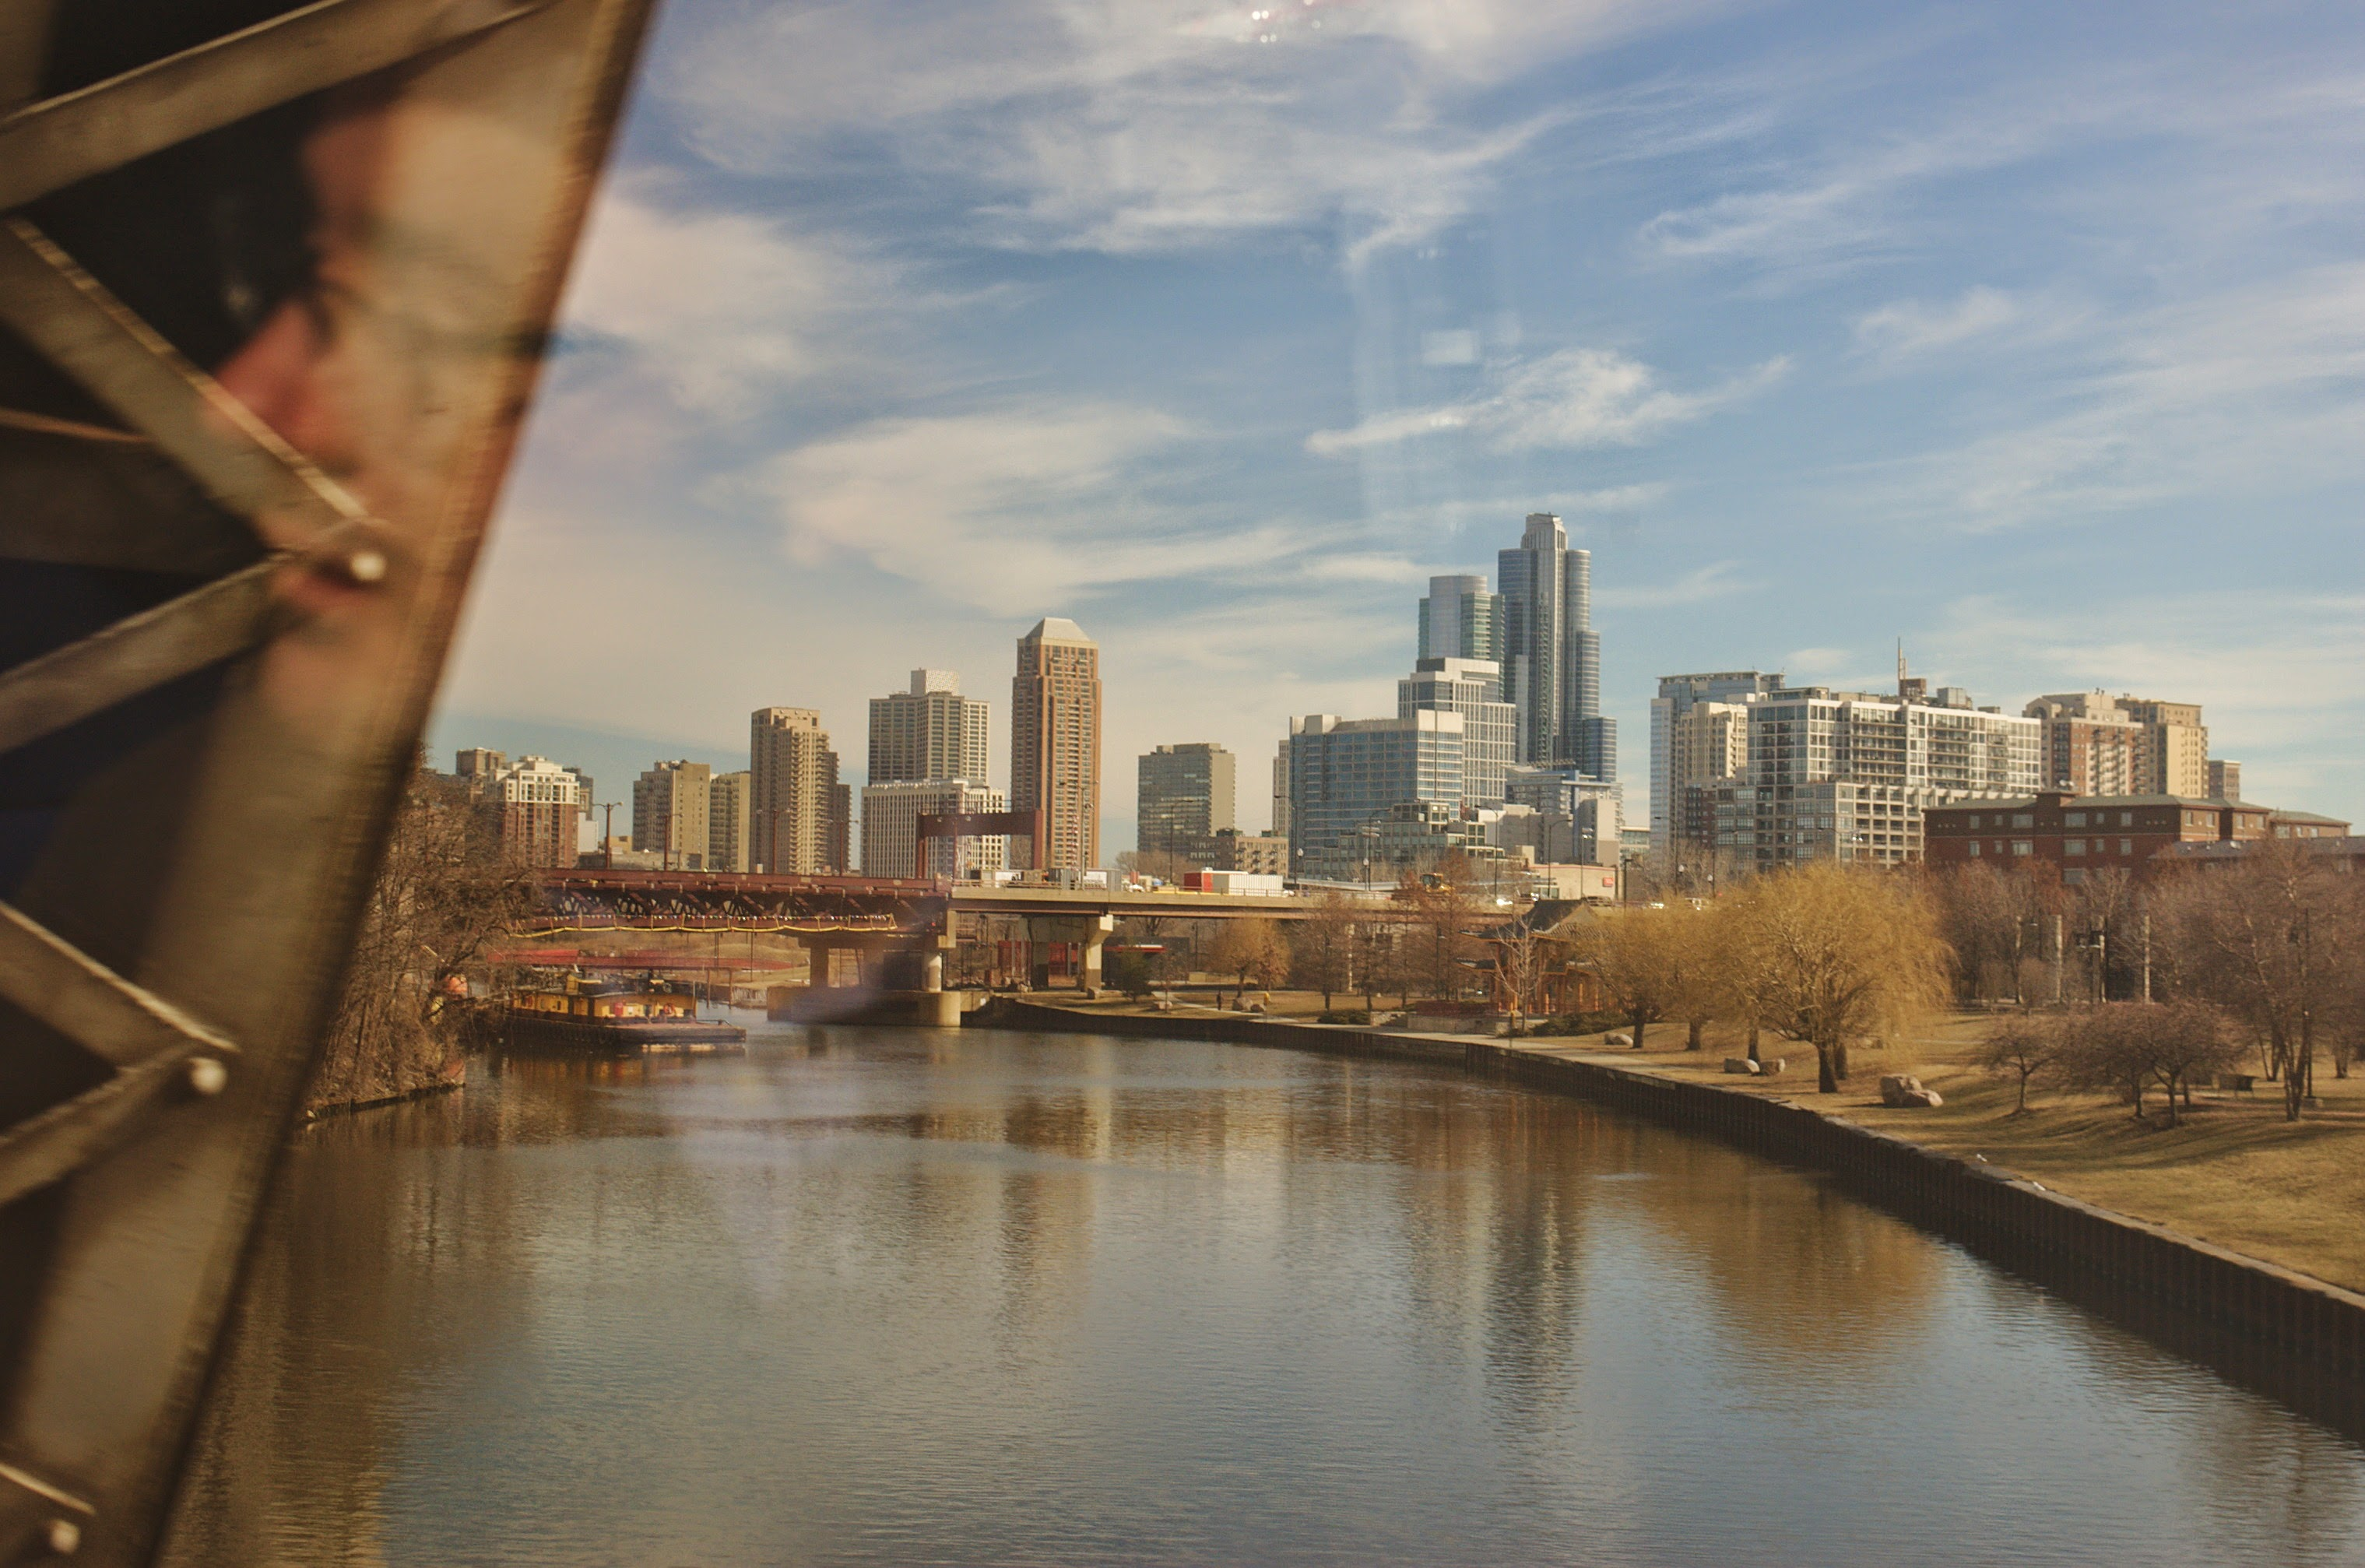 The windy city as seen from Amtrak 51.